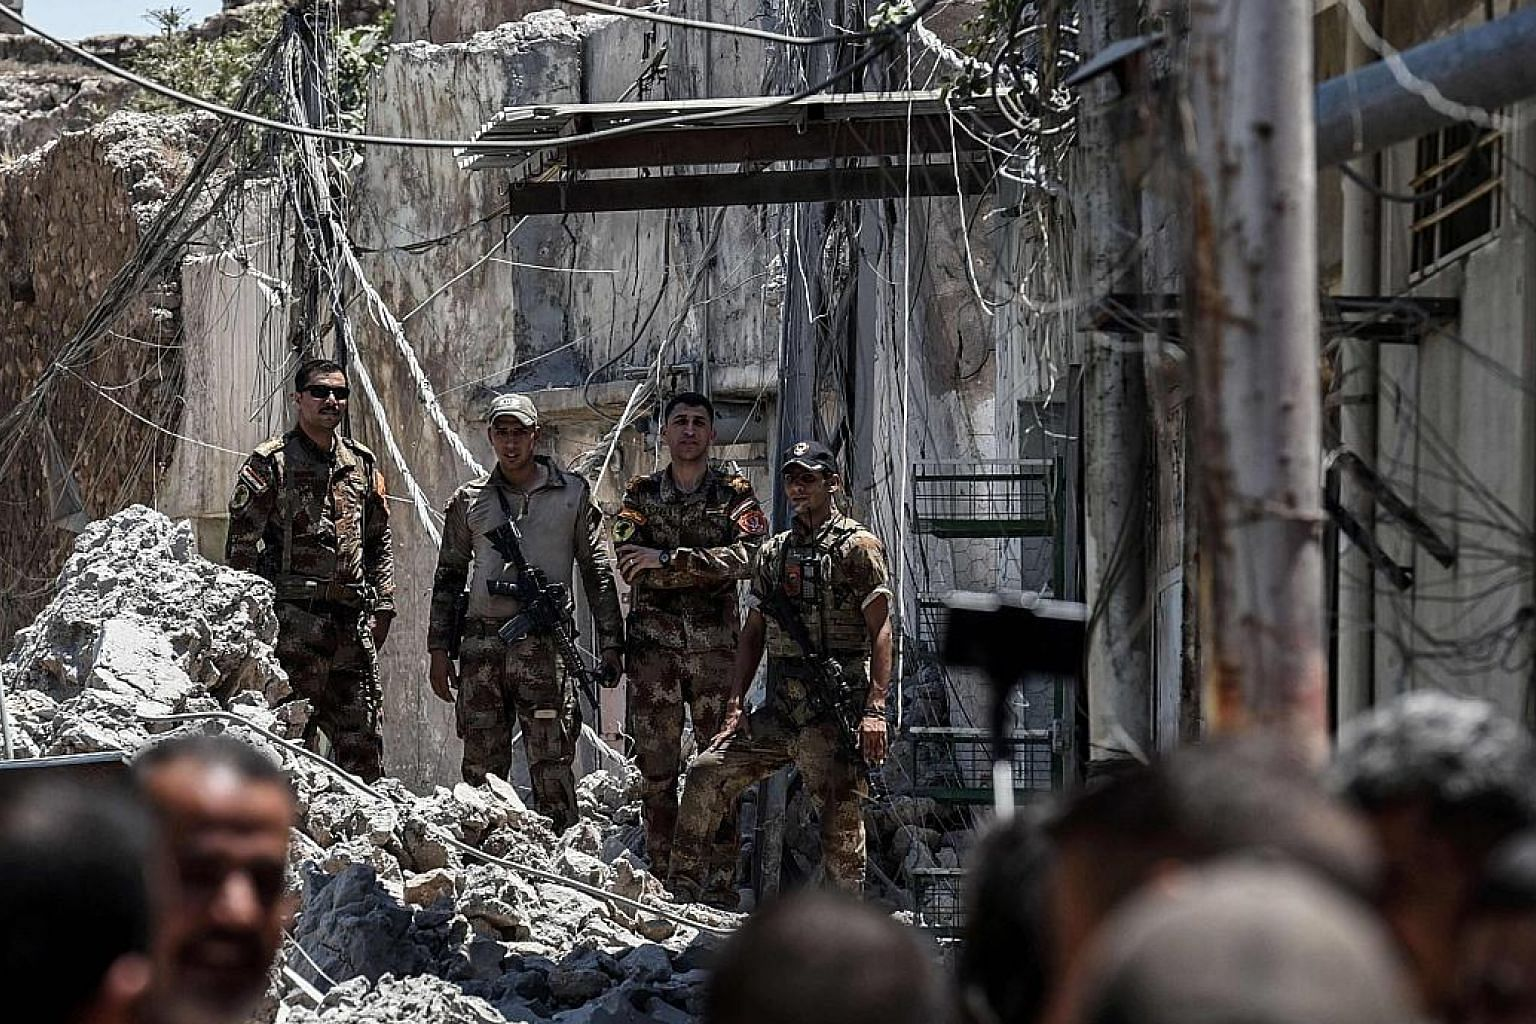 Iraqi forces advancing through Mosul's Old City on Sunday, as part of the ongoing offensive to retake the last district held by Islamic State in Iraq and Syria militants.